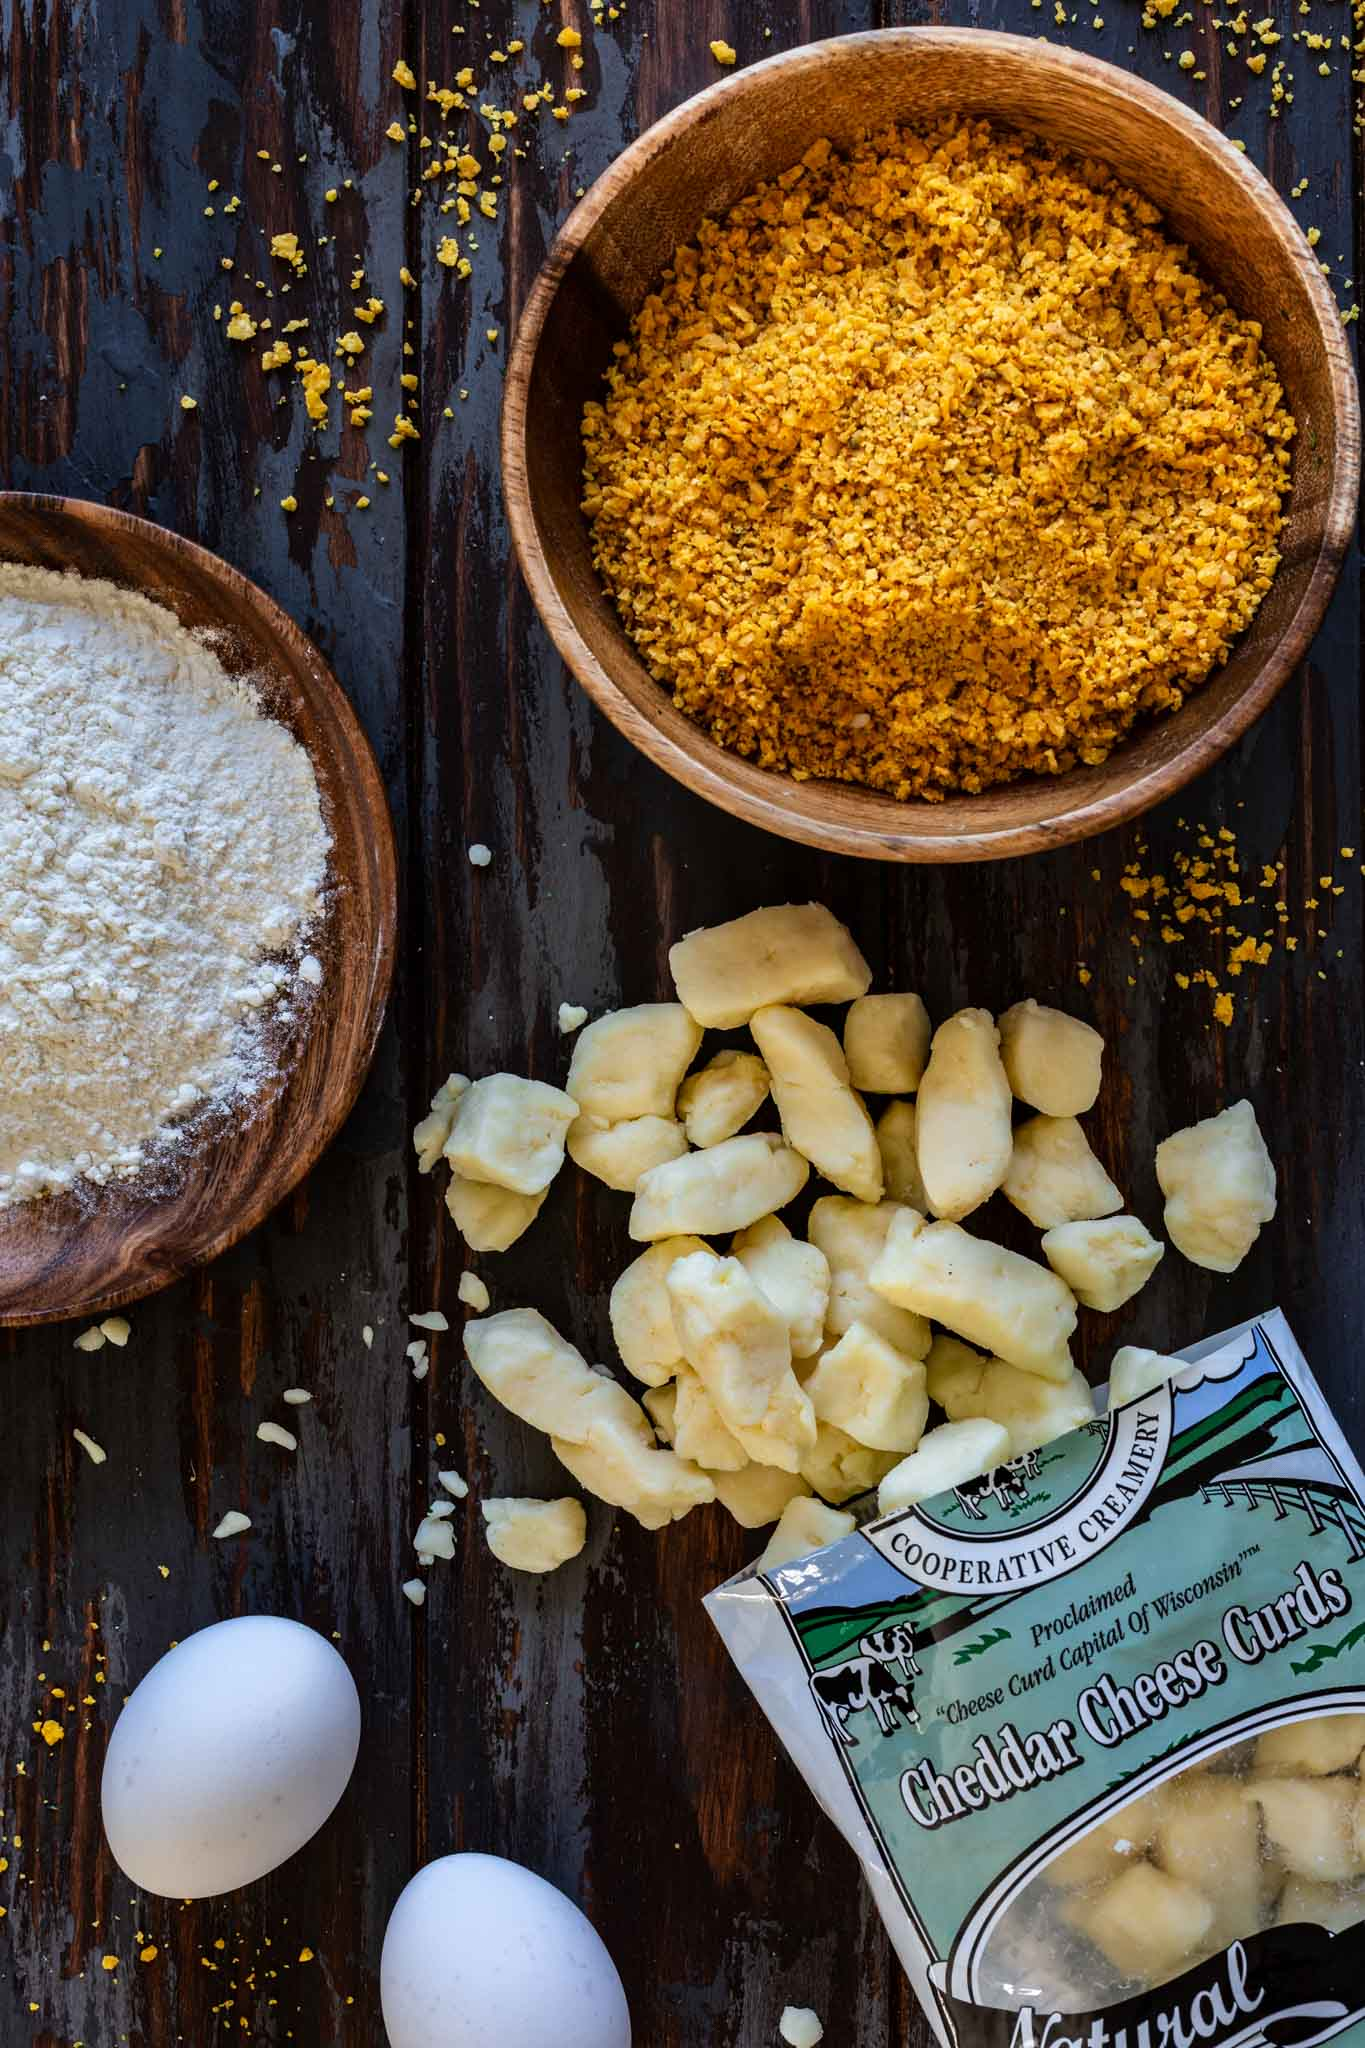 Ingredients to bread cheese